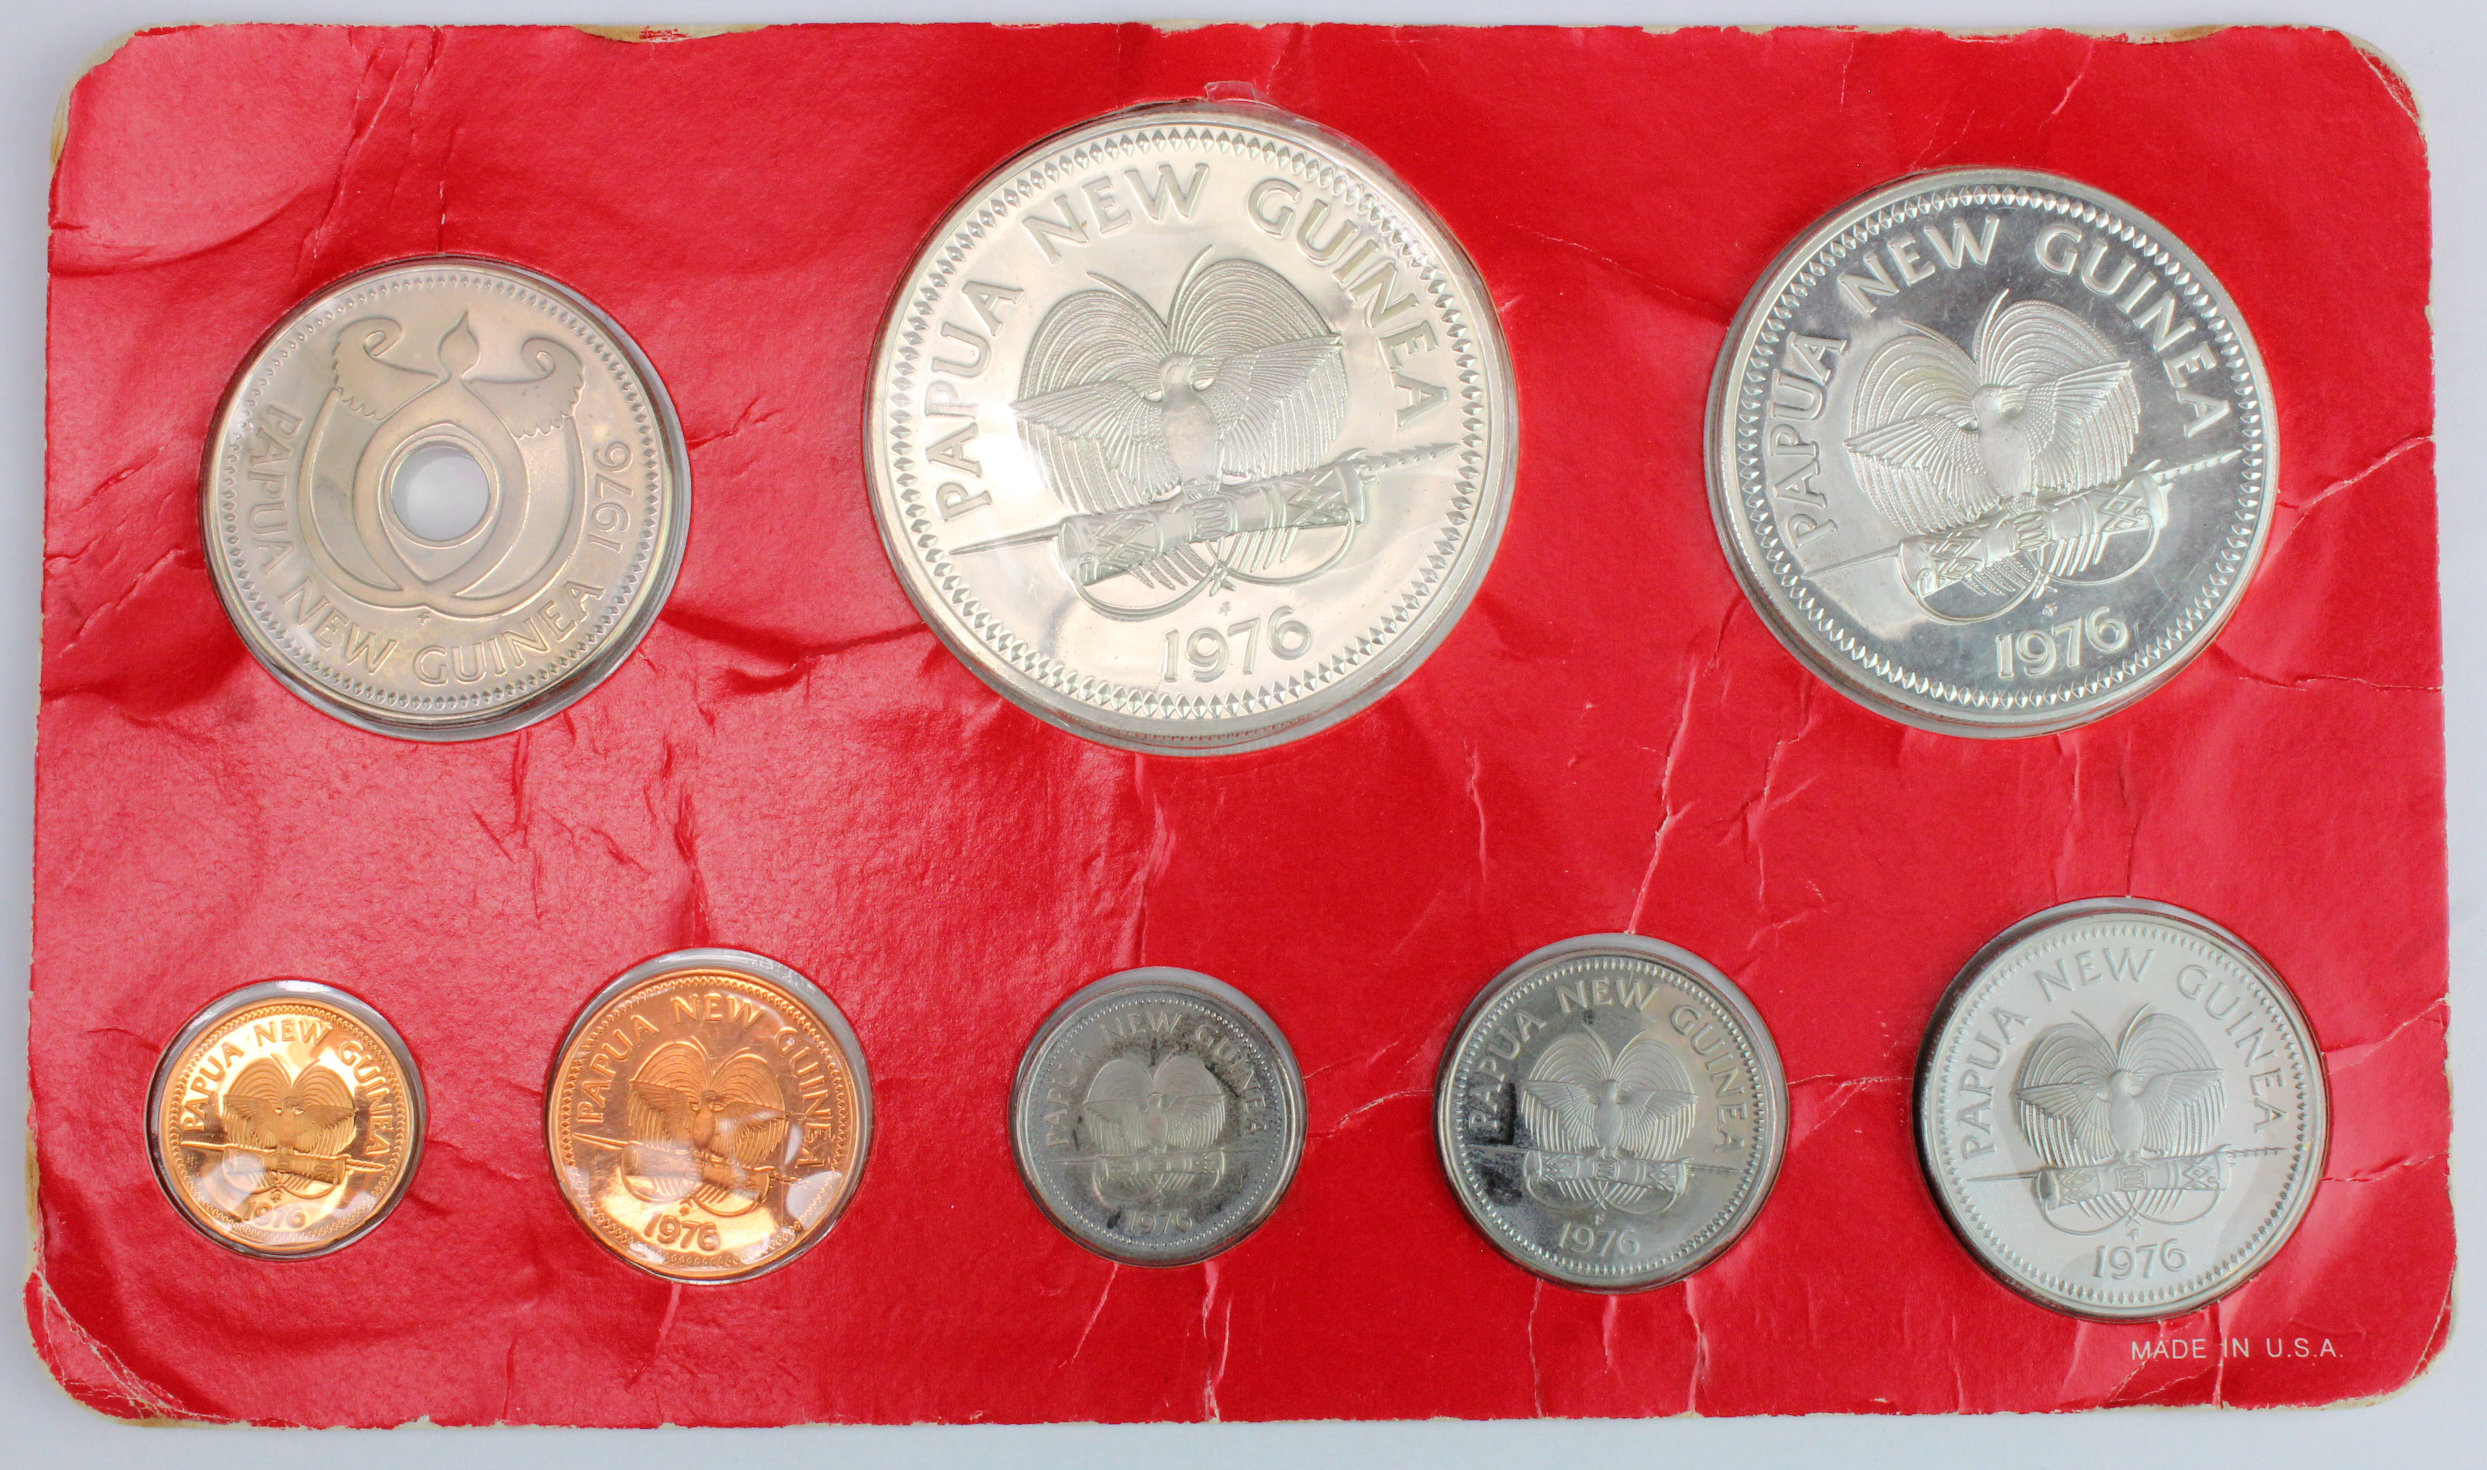 Papua New Guinea 9-coin proof set 1976 including large silver issues, lightly toned FDC in celophane